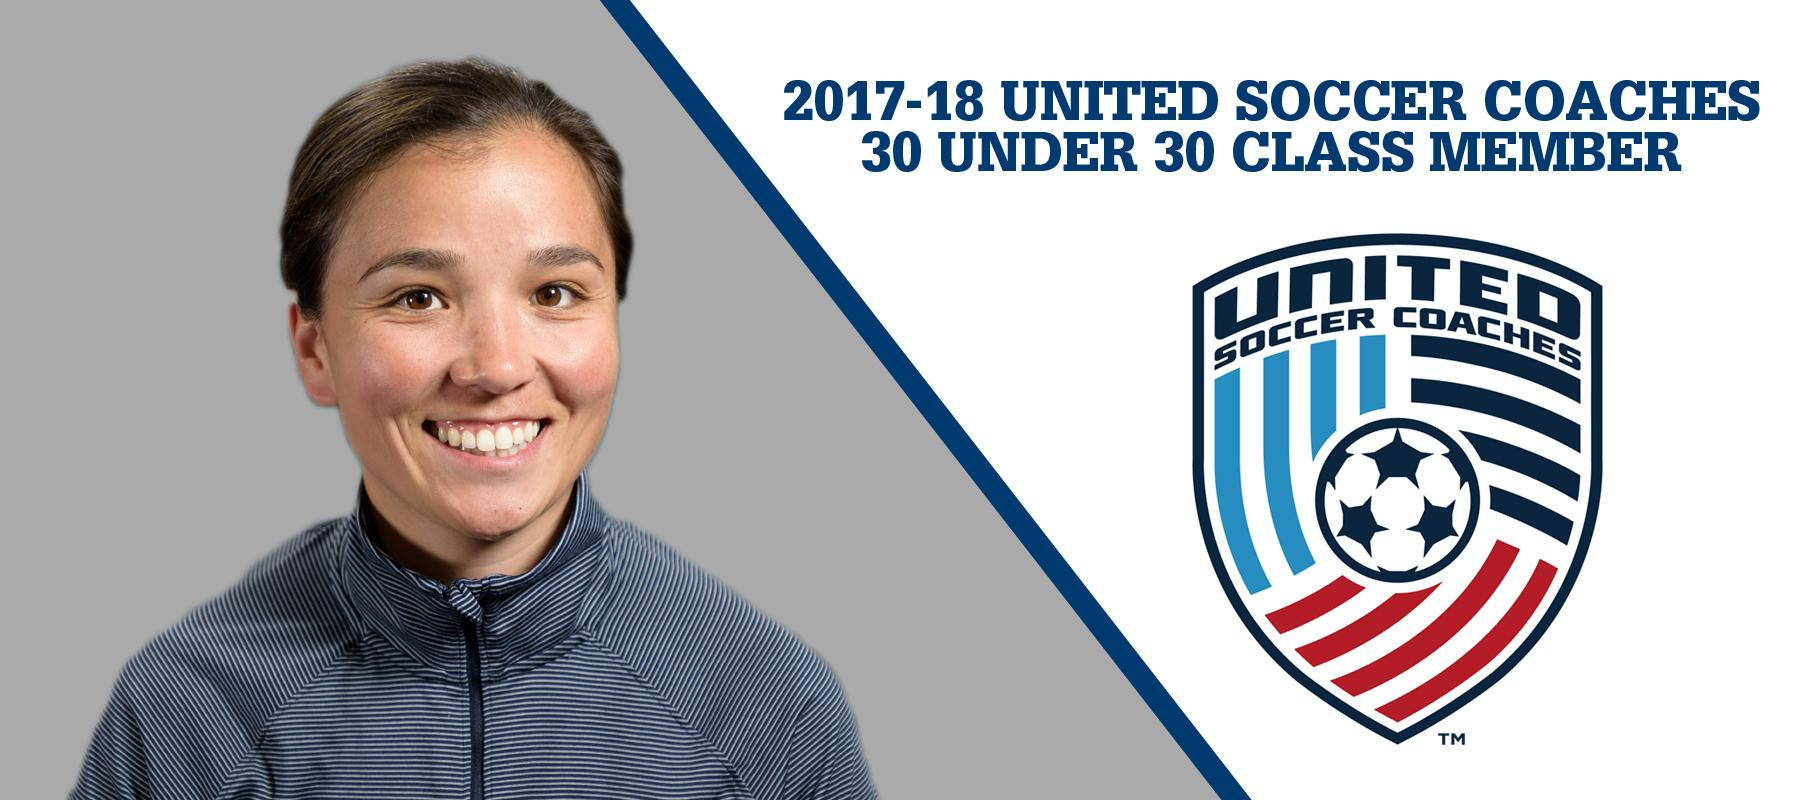 Coach Hart named to selective 30 under 30 list